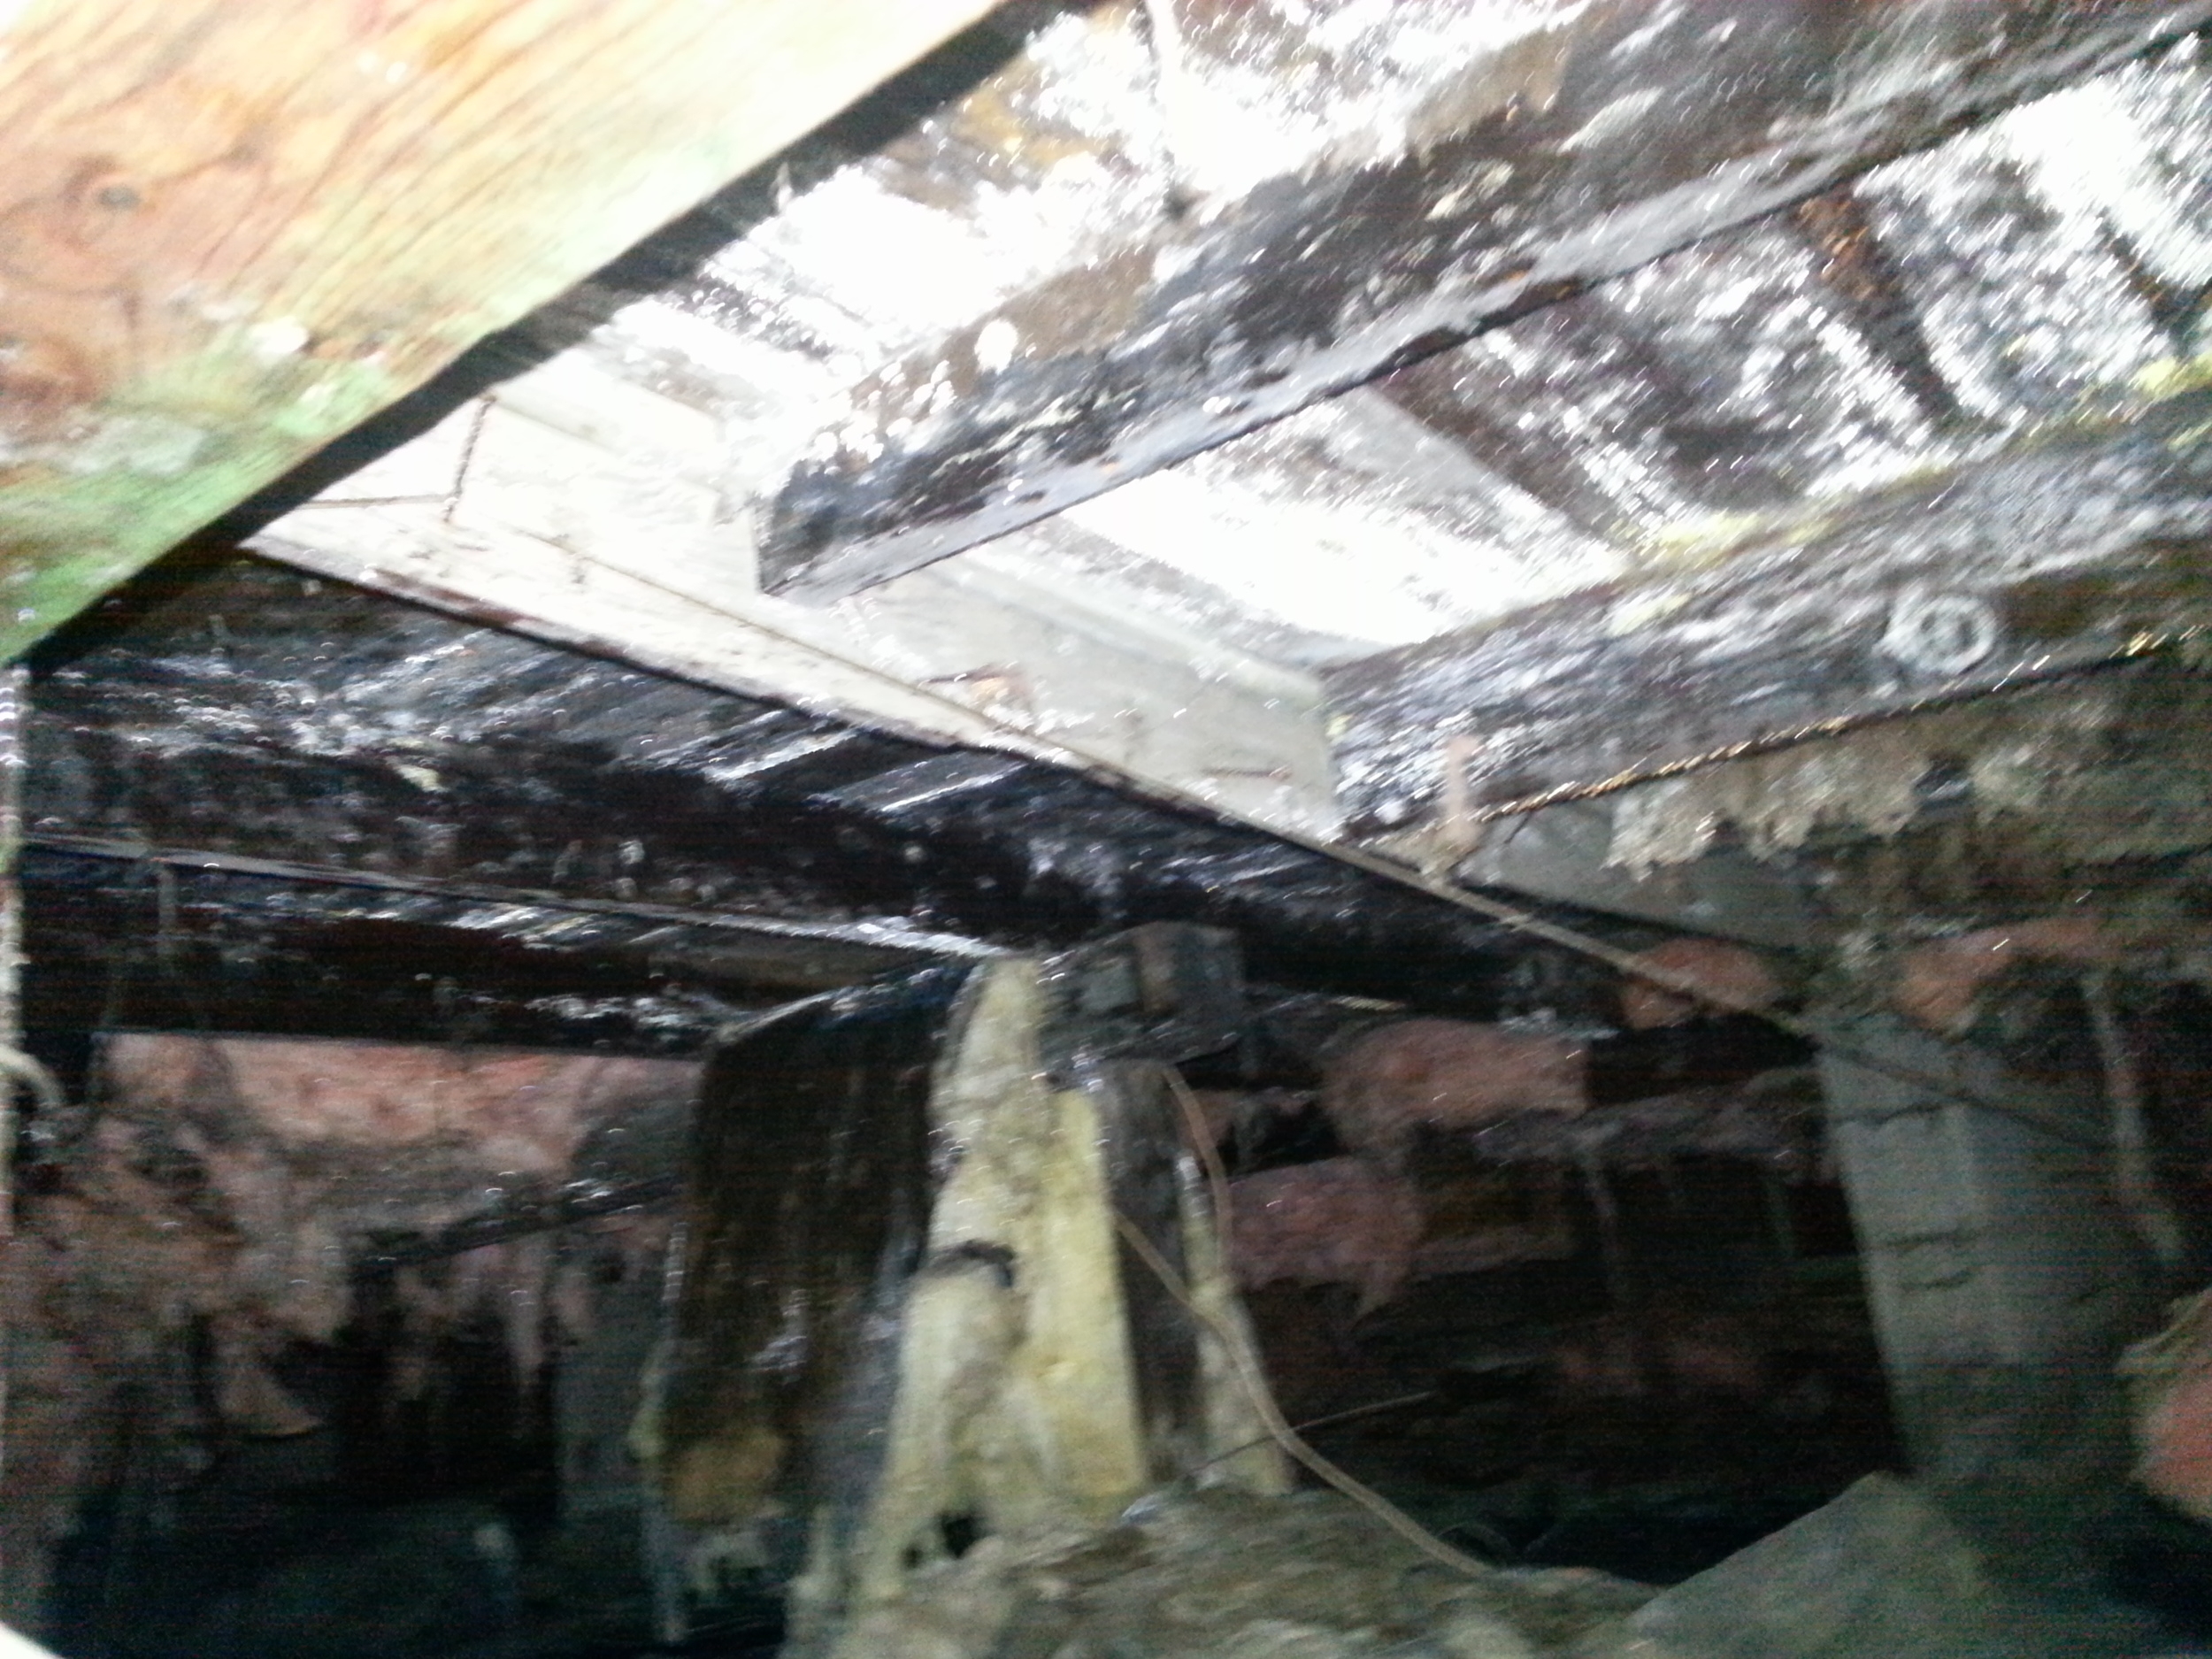 Mold Remediation Services by Groundswell Contracting